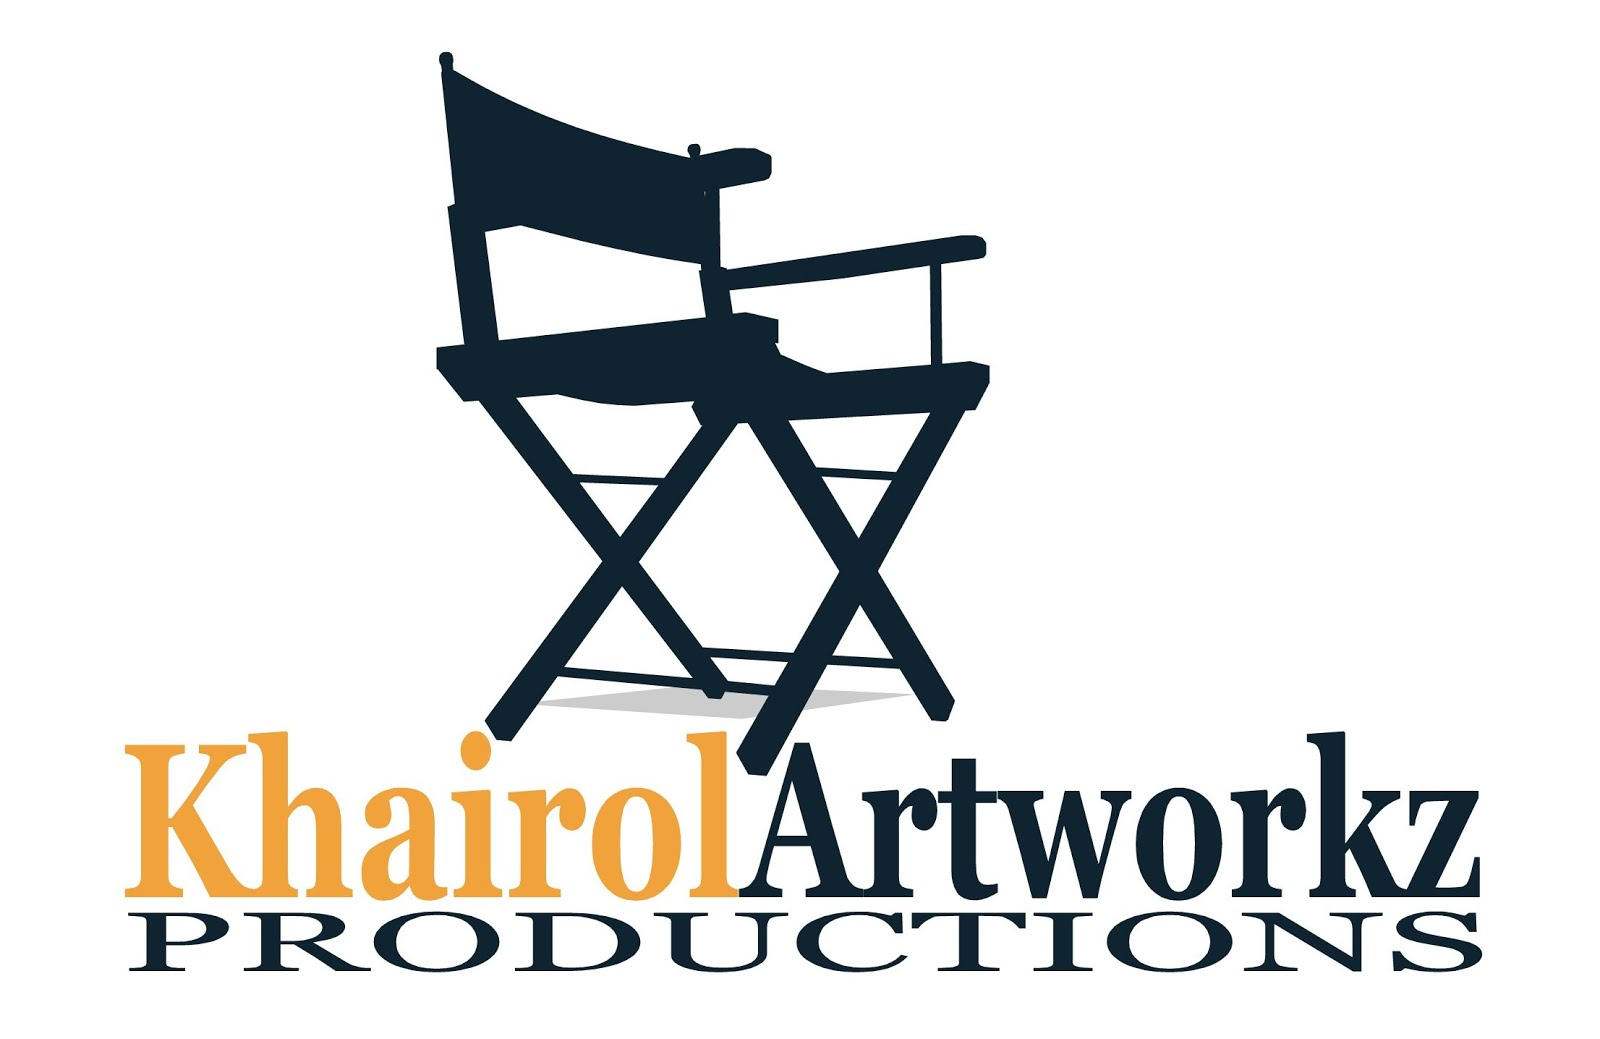 #Khairol Artworkz Productions